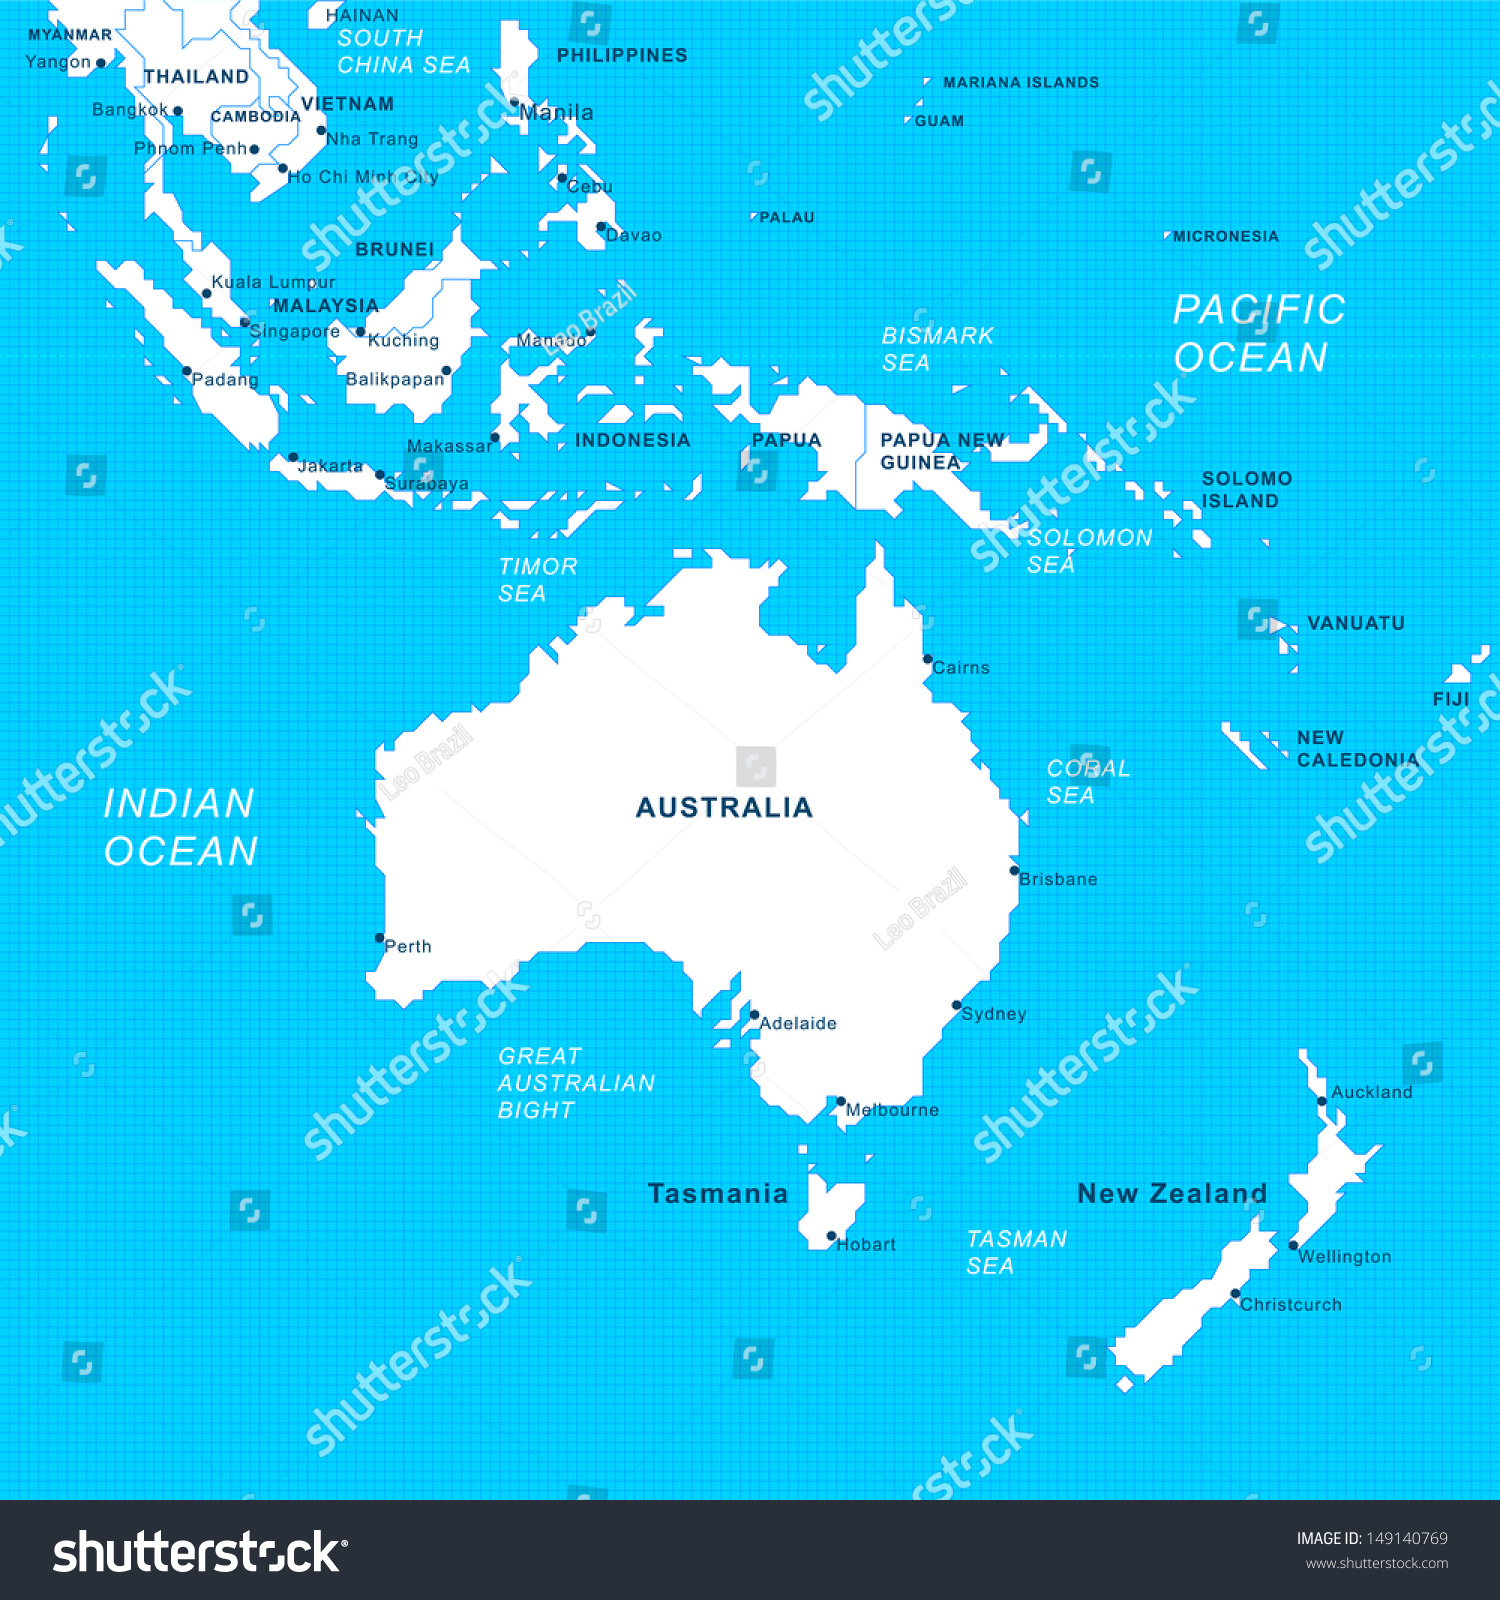 what is australia relationship with the asia pacific region